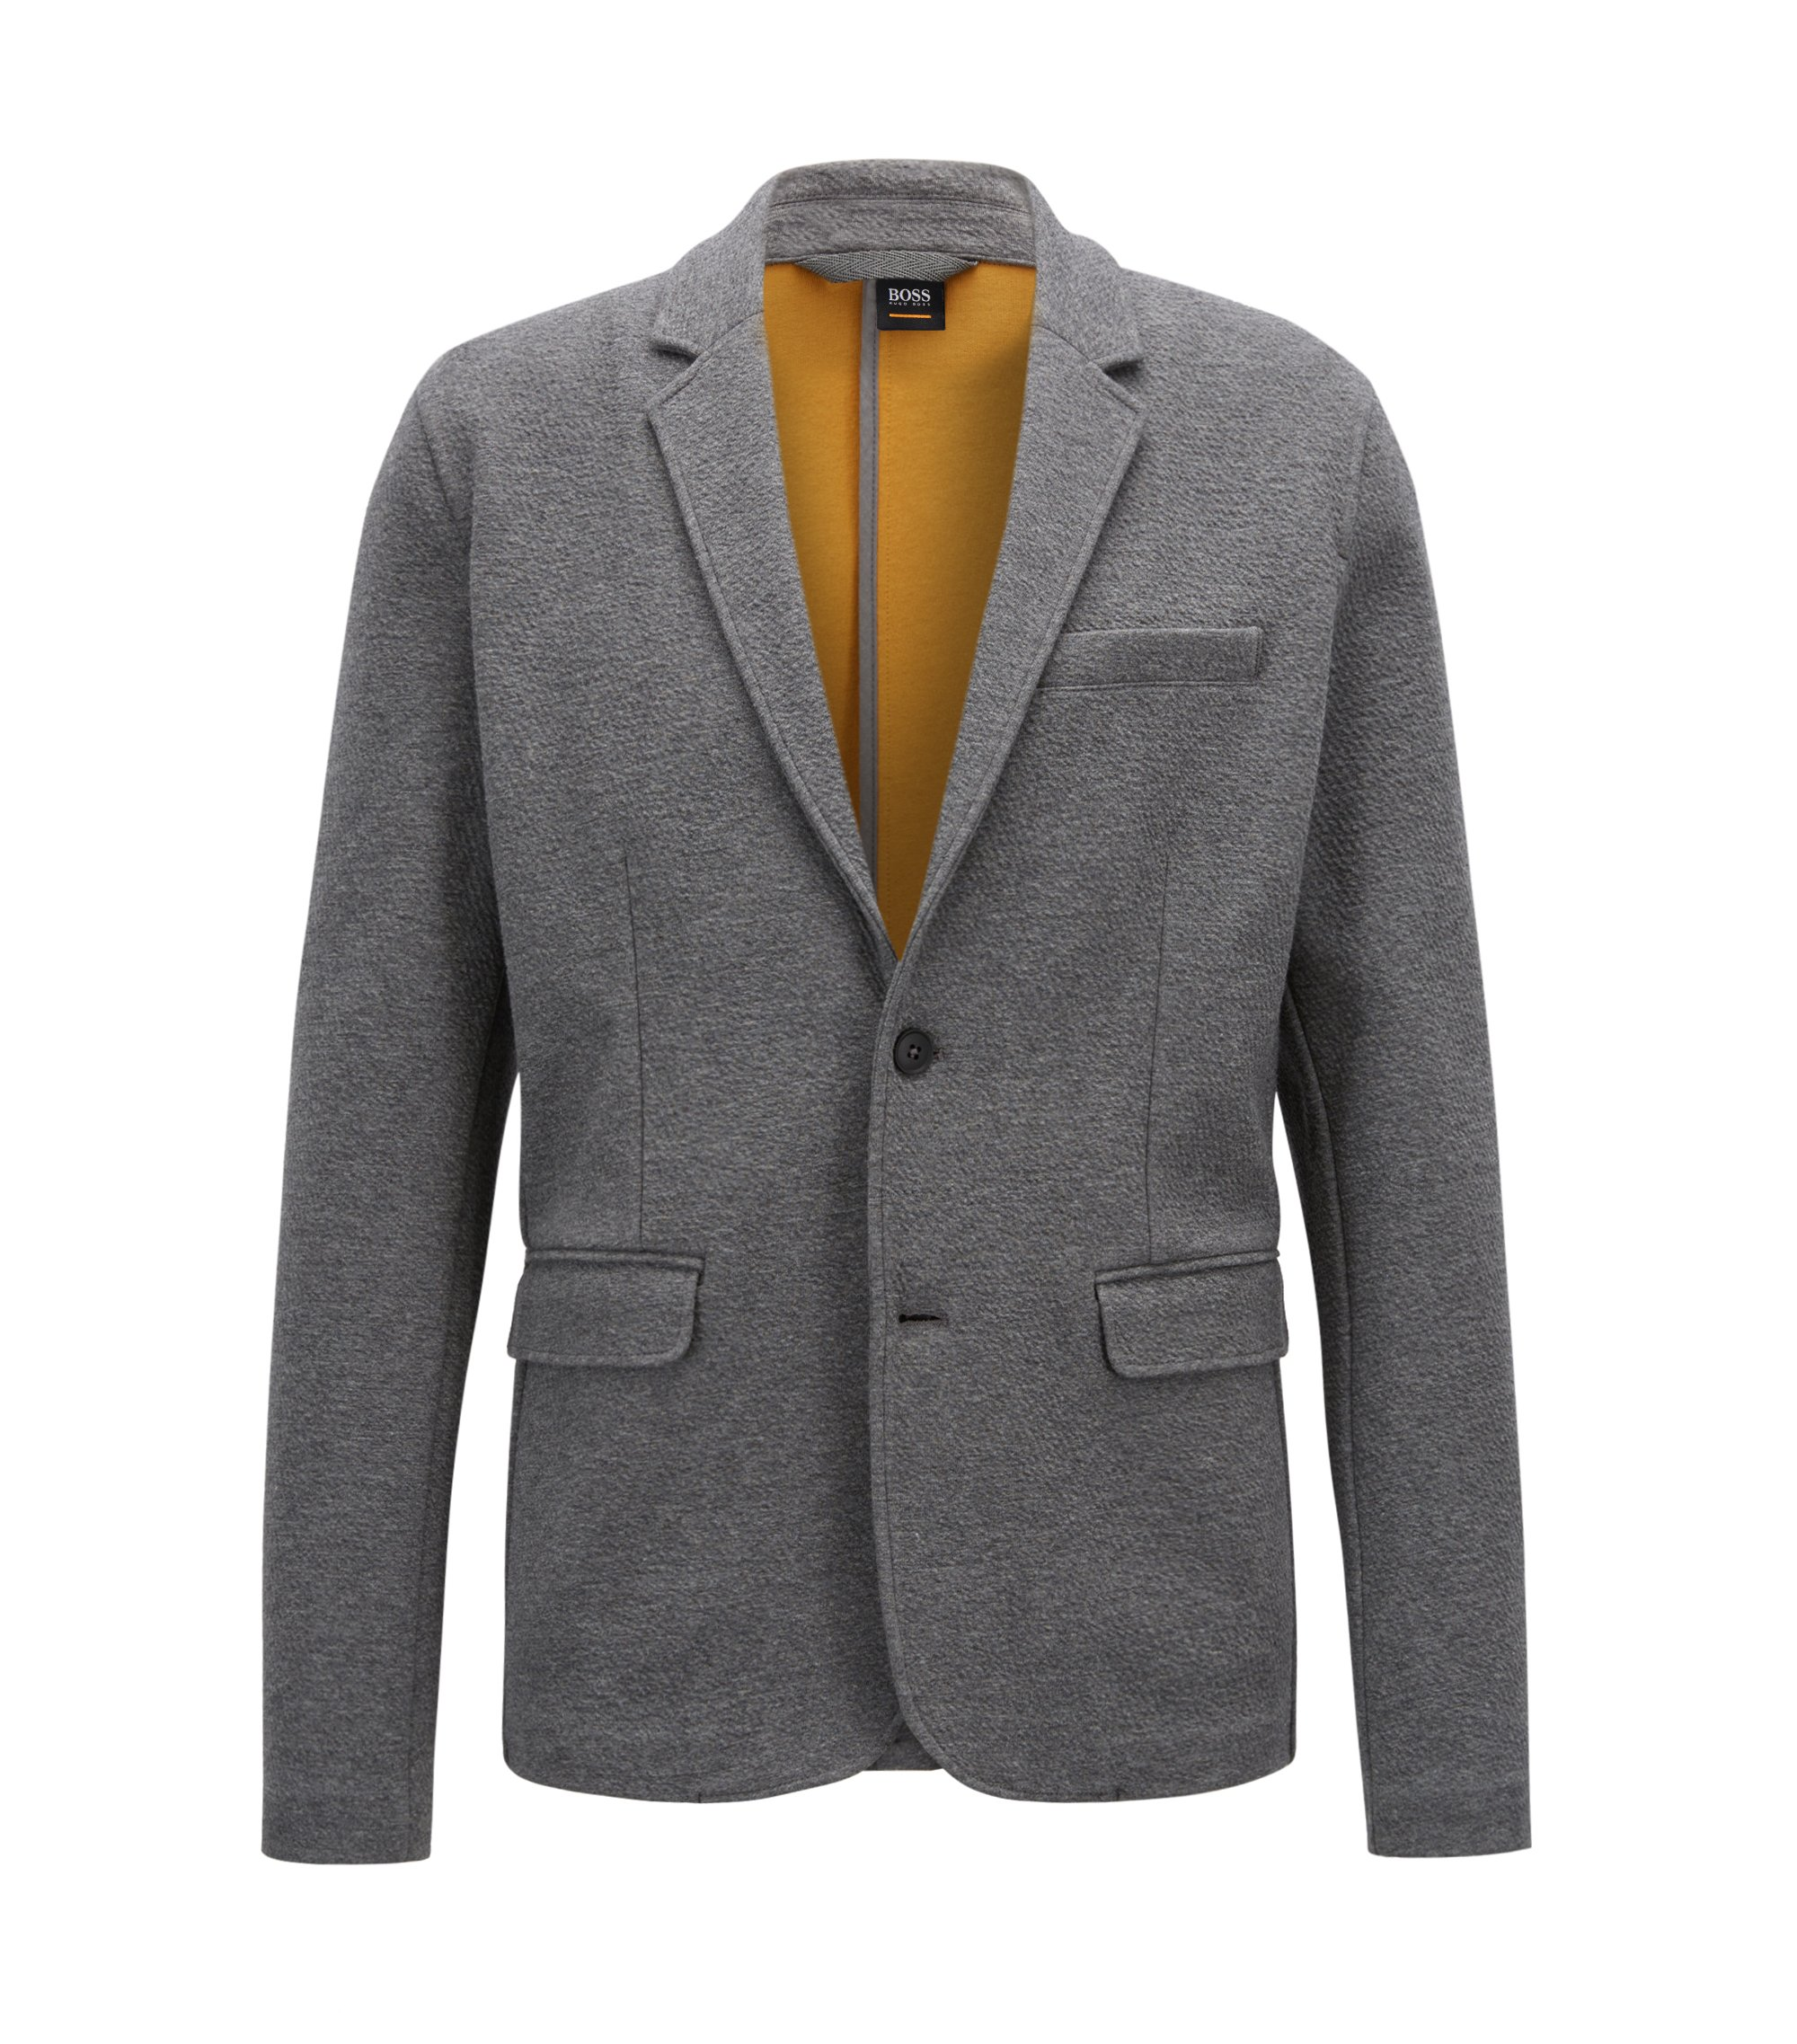 Blazer in stretch jersey with pop-colour detail, Dark Grey